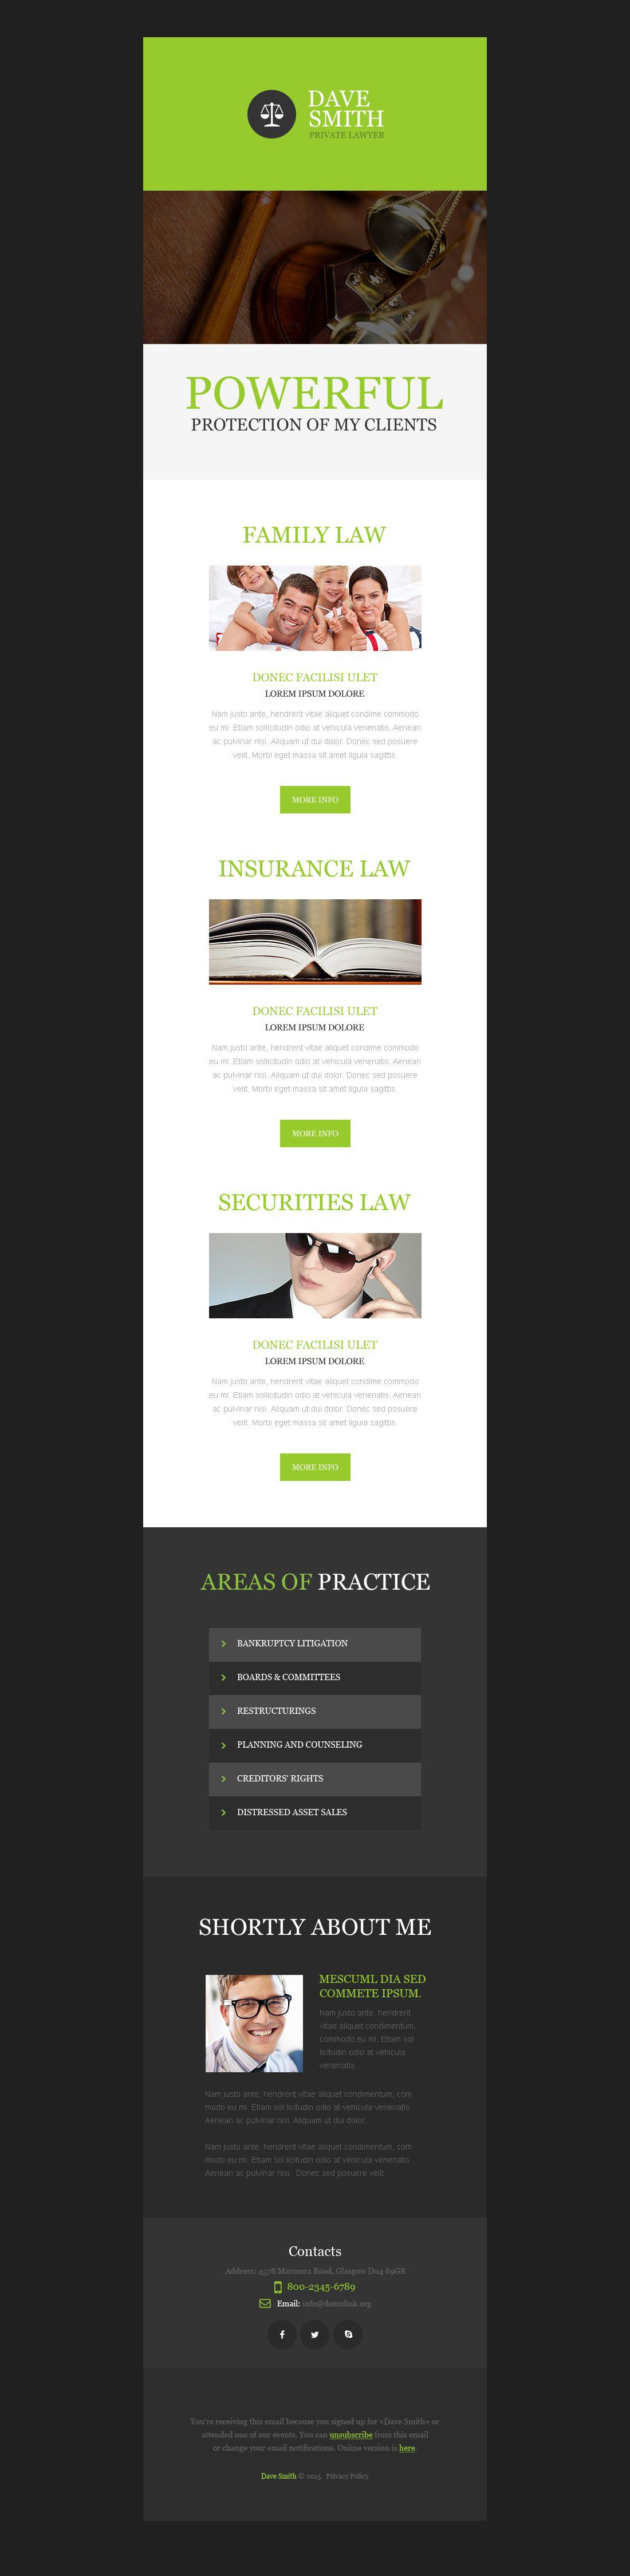 The Dave Smith Law Agency Newsletter Template Design 53195, one of the best Newsletter templates of its kind (law, most popular), also known as Dave Smith law agency Newsletter template, constitution Newsletter template, rules Newsletter template, case Newsletter template, business Newsletter template, affair Newsletter template, practice Newsletter template, experience Newsletter template, membership Newsletter template, work Newsletter template, articles Newsletter template, responsibility Newsletter template, biography Newsletter template, hobbies Newsletter template, testimonials Newsletter template, client Newsletter template, clients Newsletter template, partners Newsletter template, services Newsletter template, specials Newsletter template, help Newsletter template, support Newsletter template, advocacy Newsletter template, maintenance Newsletter template, protect and related with Dave Smith law agency, constitution, rules, case, business, affair, practice, experience, membership, work, articles, responsibility, biography, hobbies, testimonials, client, clients, partners, services, specials, help, support, advocacy, maintenance, protect, etc.